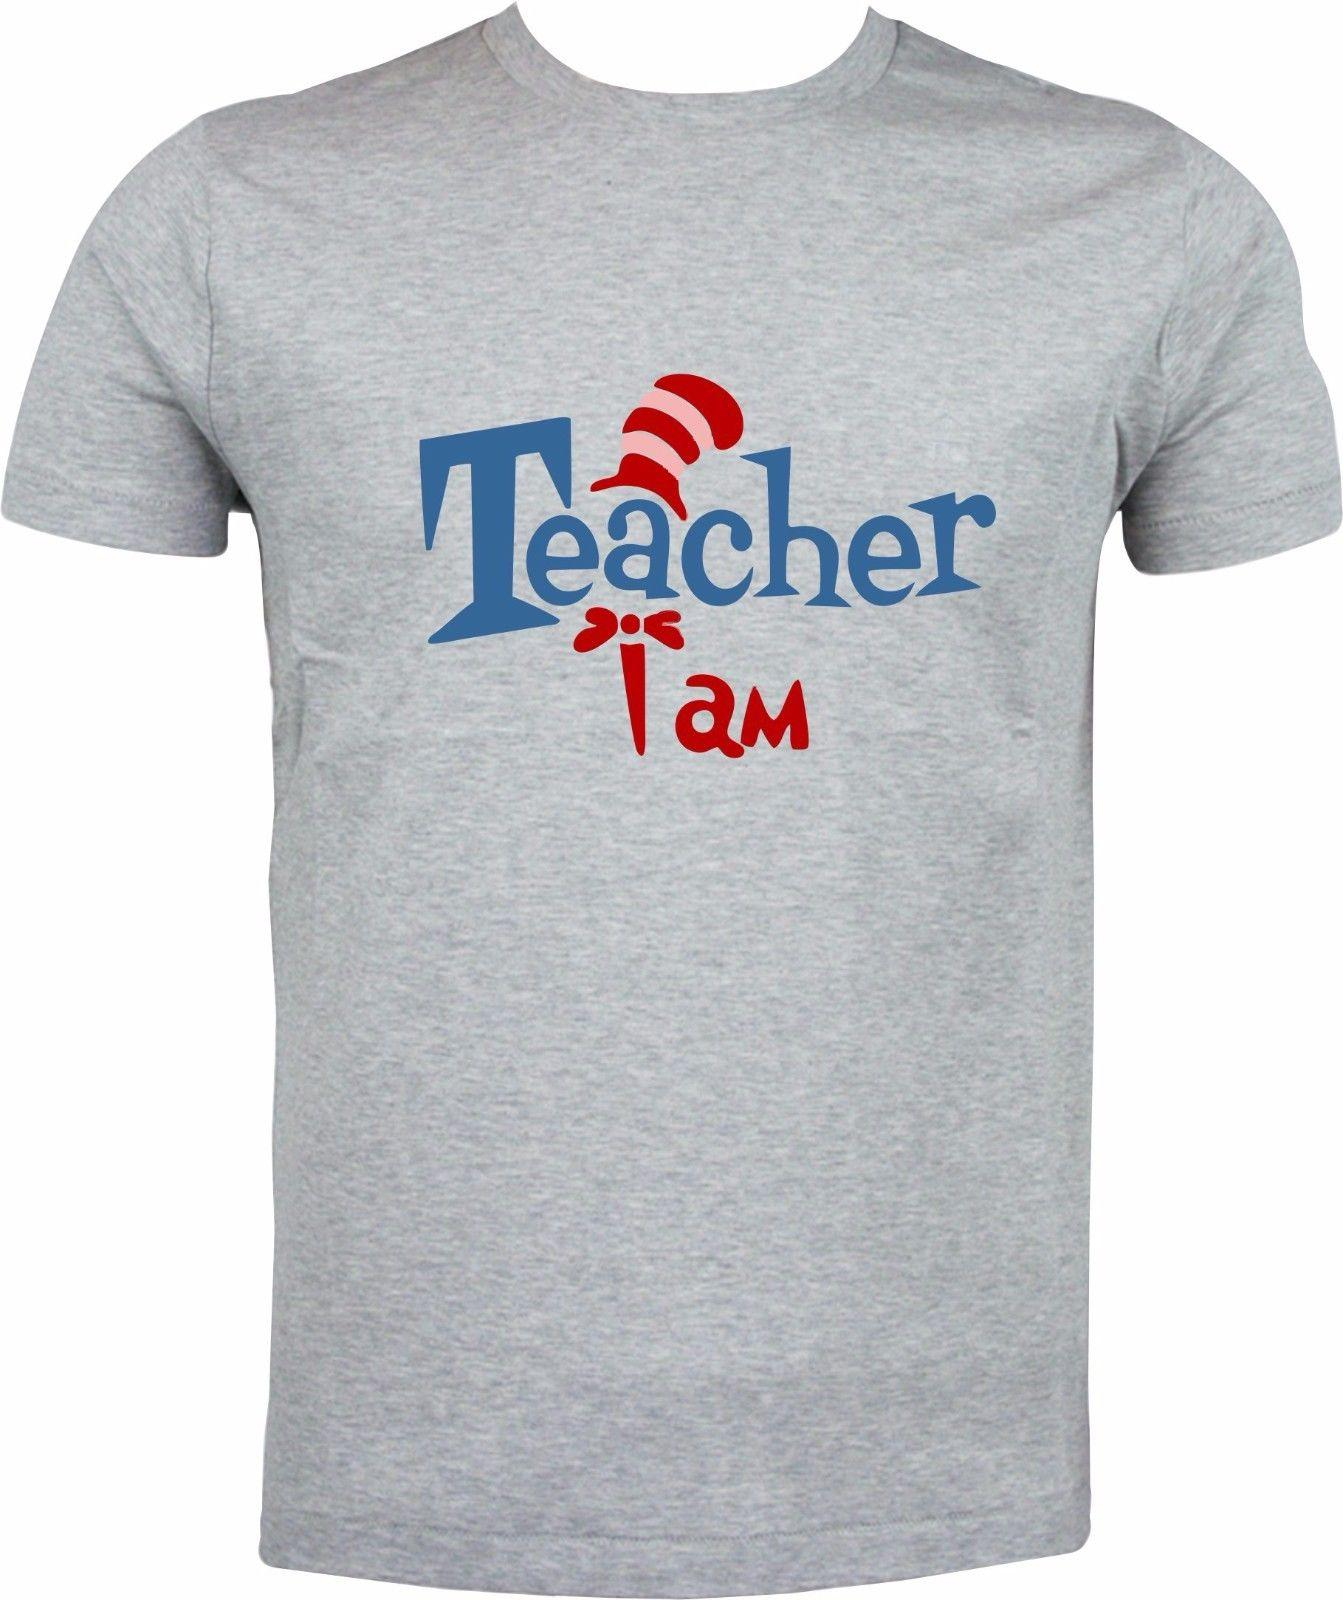 c0e7b1ee885 TEACHER I AM DR SEUSS CAT IN THE HAT FUNNY HUMOUR FULL COLOR SUBLIMATION T  SHIRT T Shirt Of The Day Buy Tshirts From Xm24tshirt